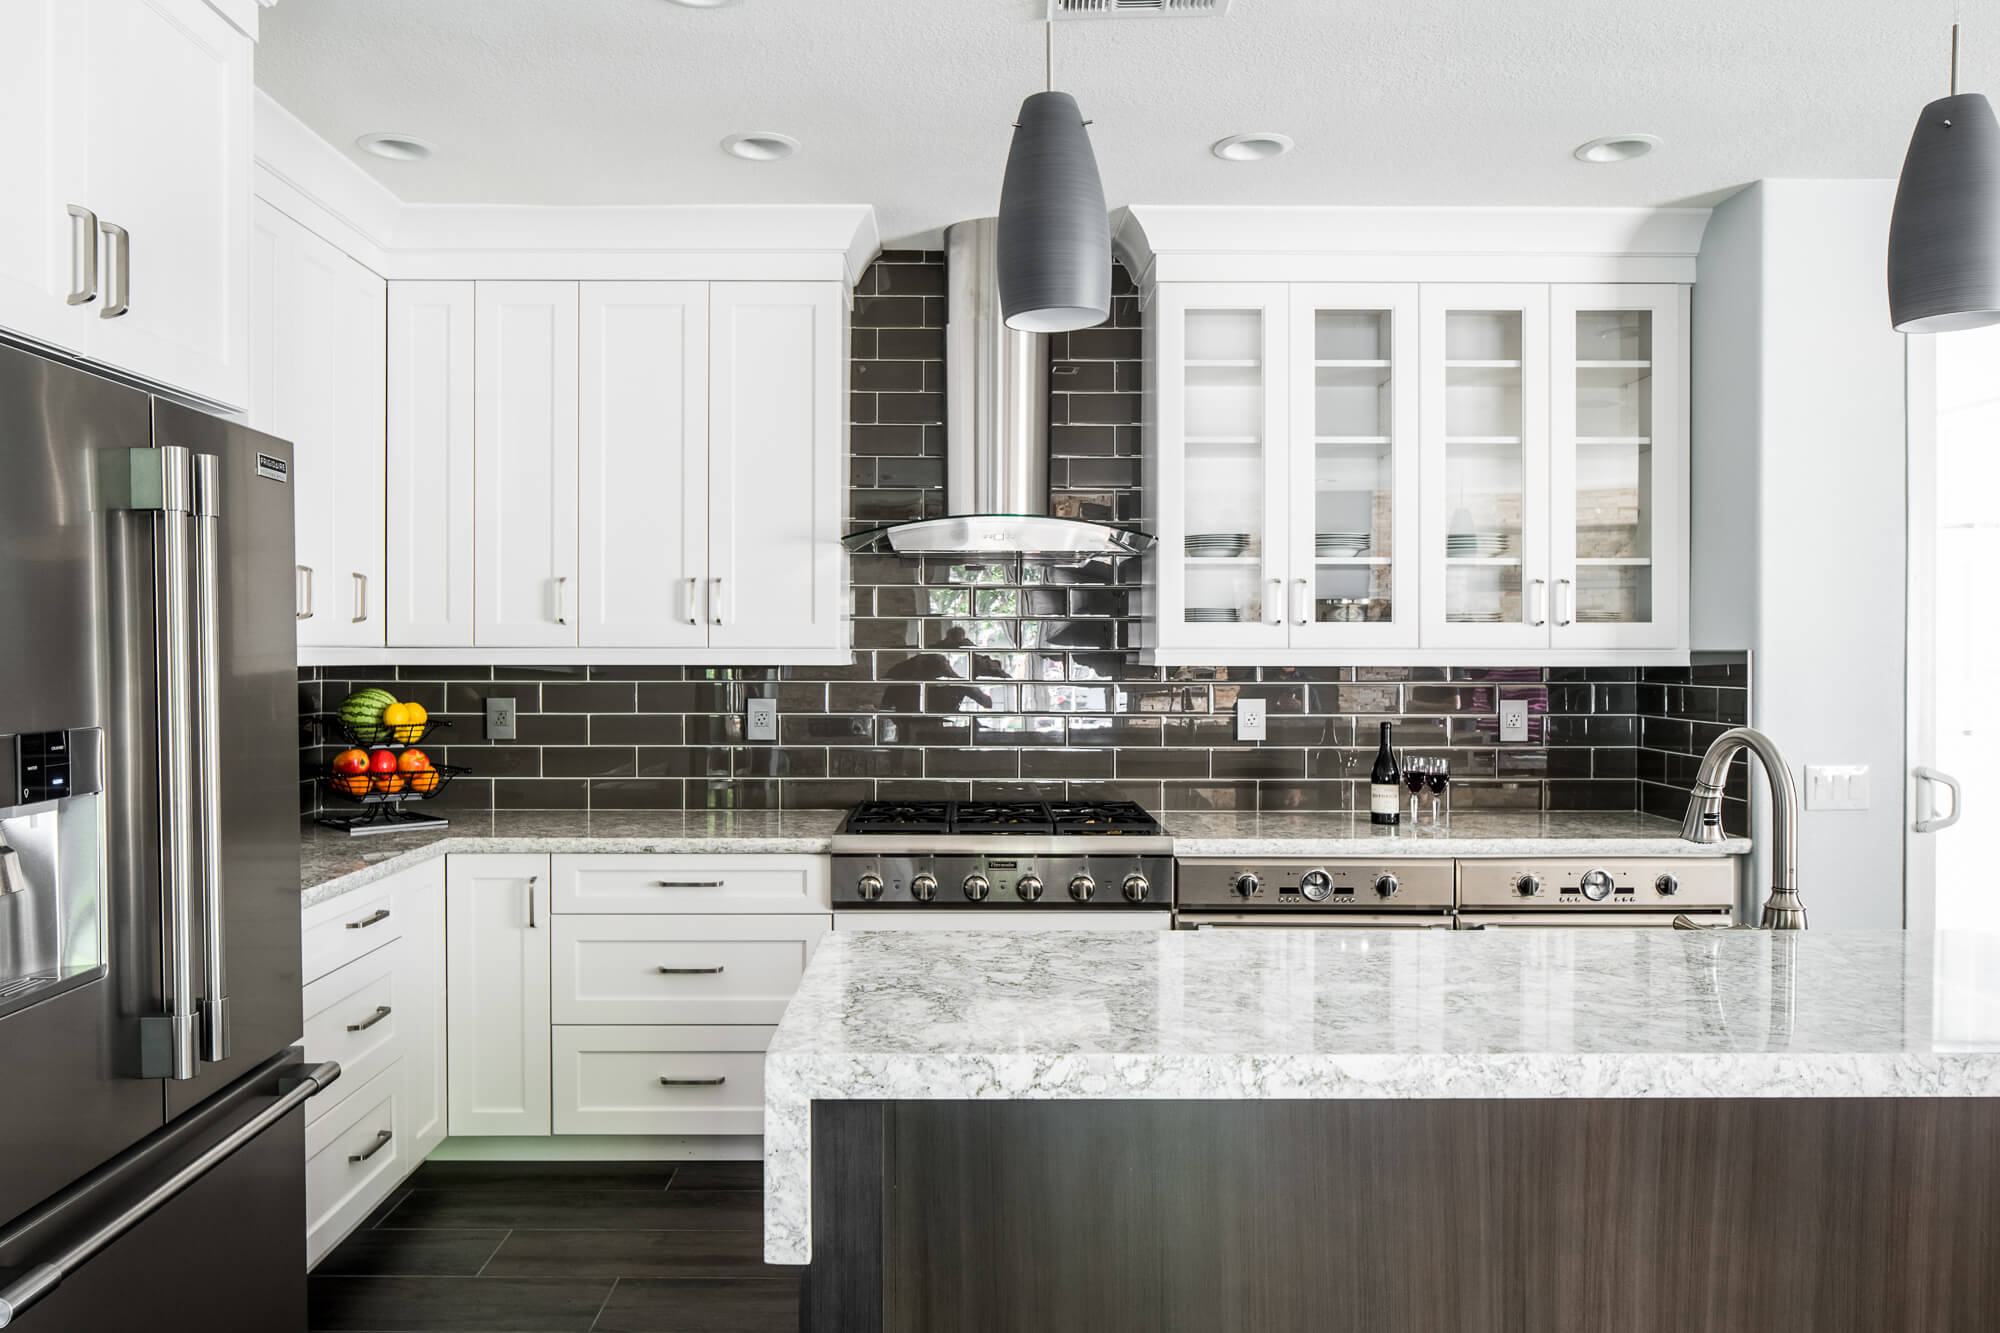 gray and white kitchen and subway style backsplash and quartz countertop